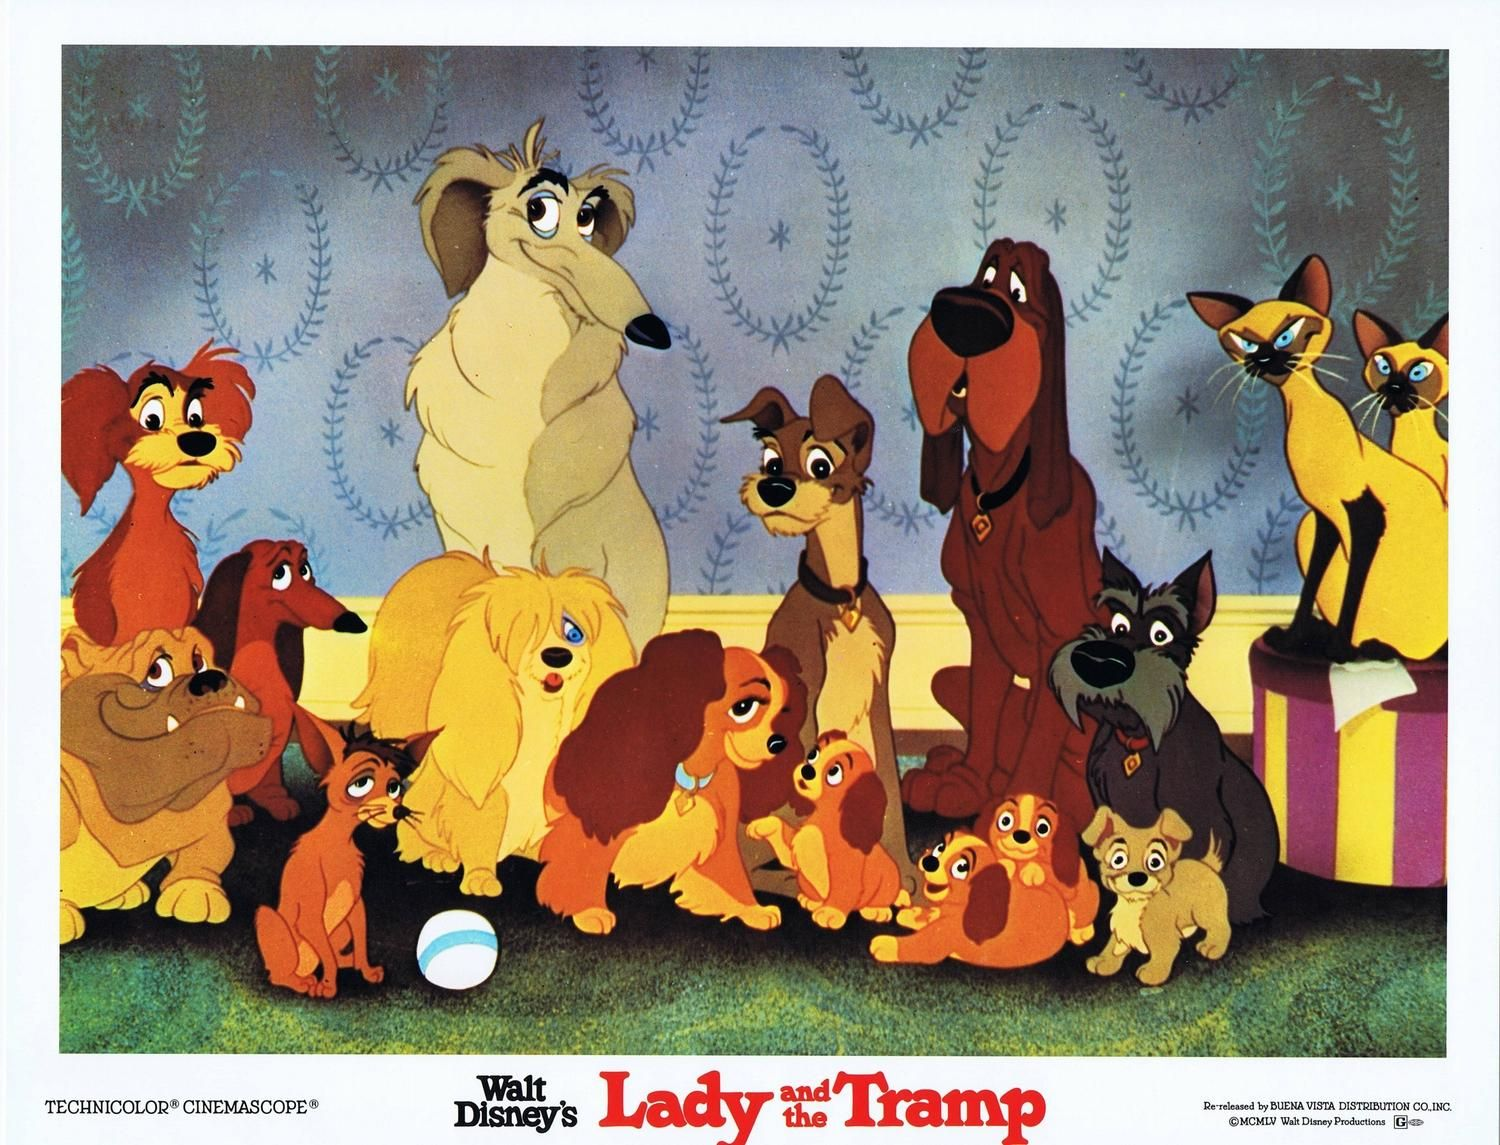 Lady And The Tramp 11 X 14 Lobby Card Re Release Lady And The Tramp Lobby Cards Walt Disney Movies